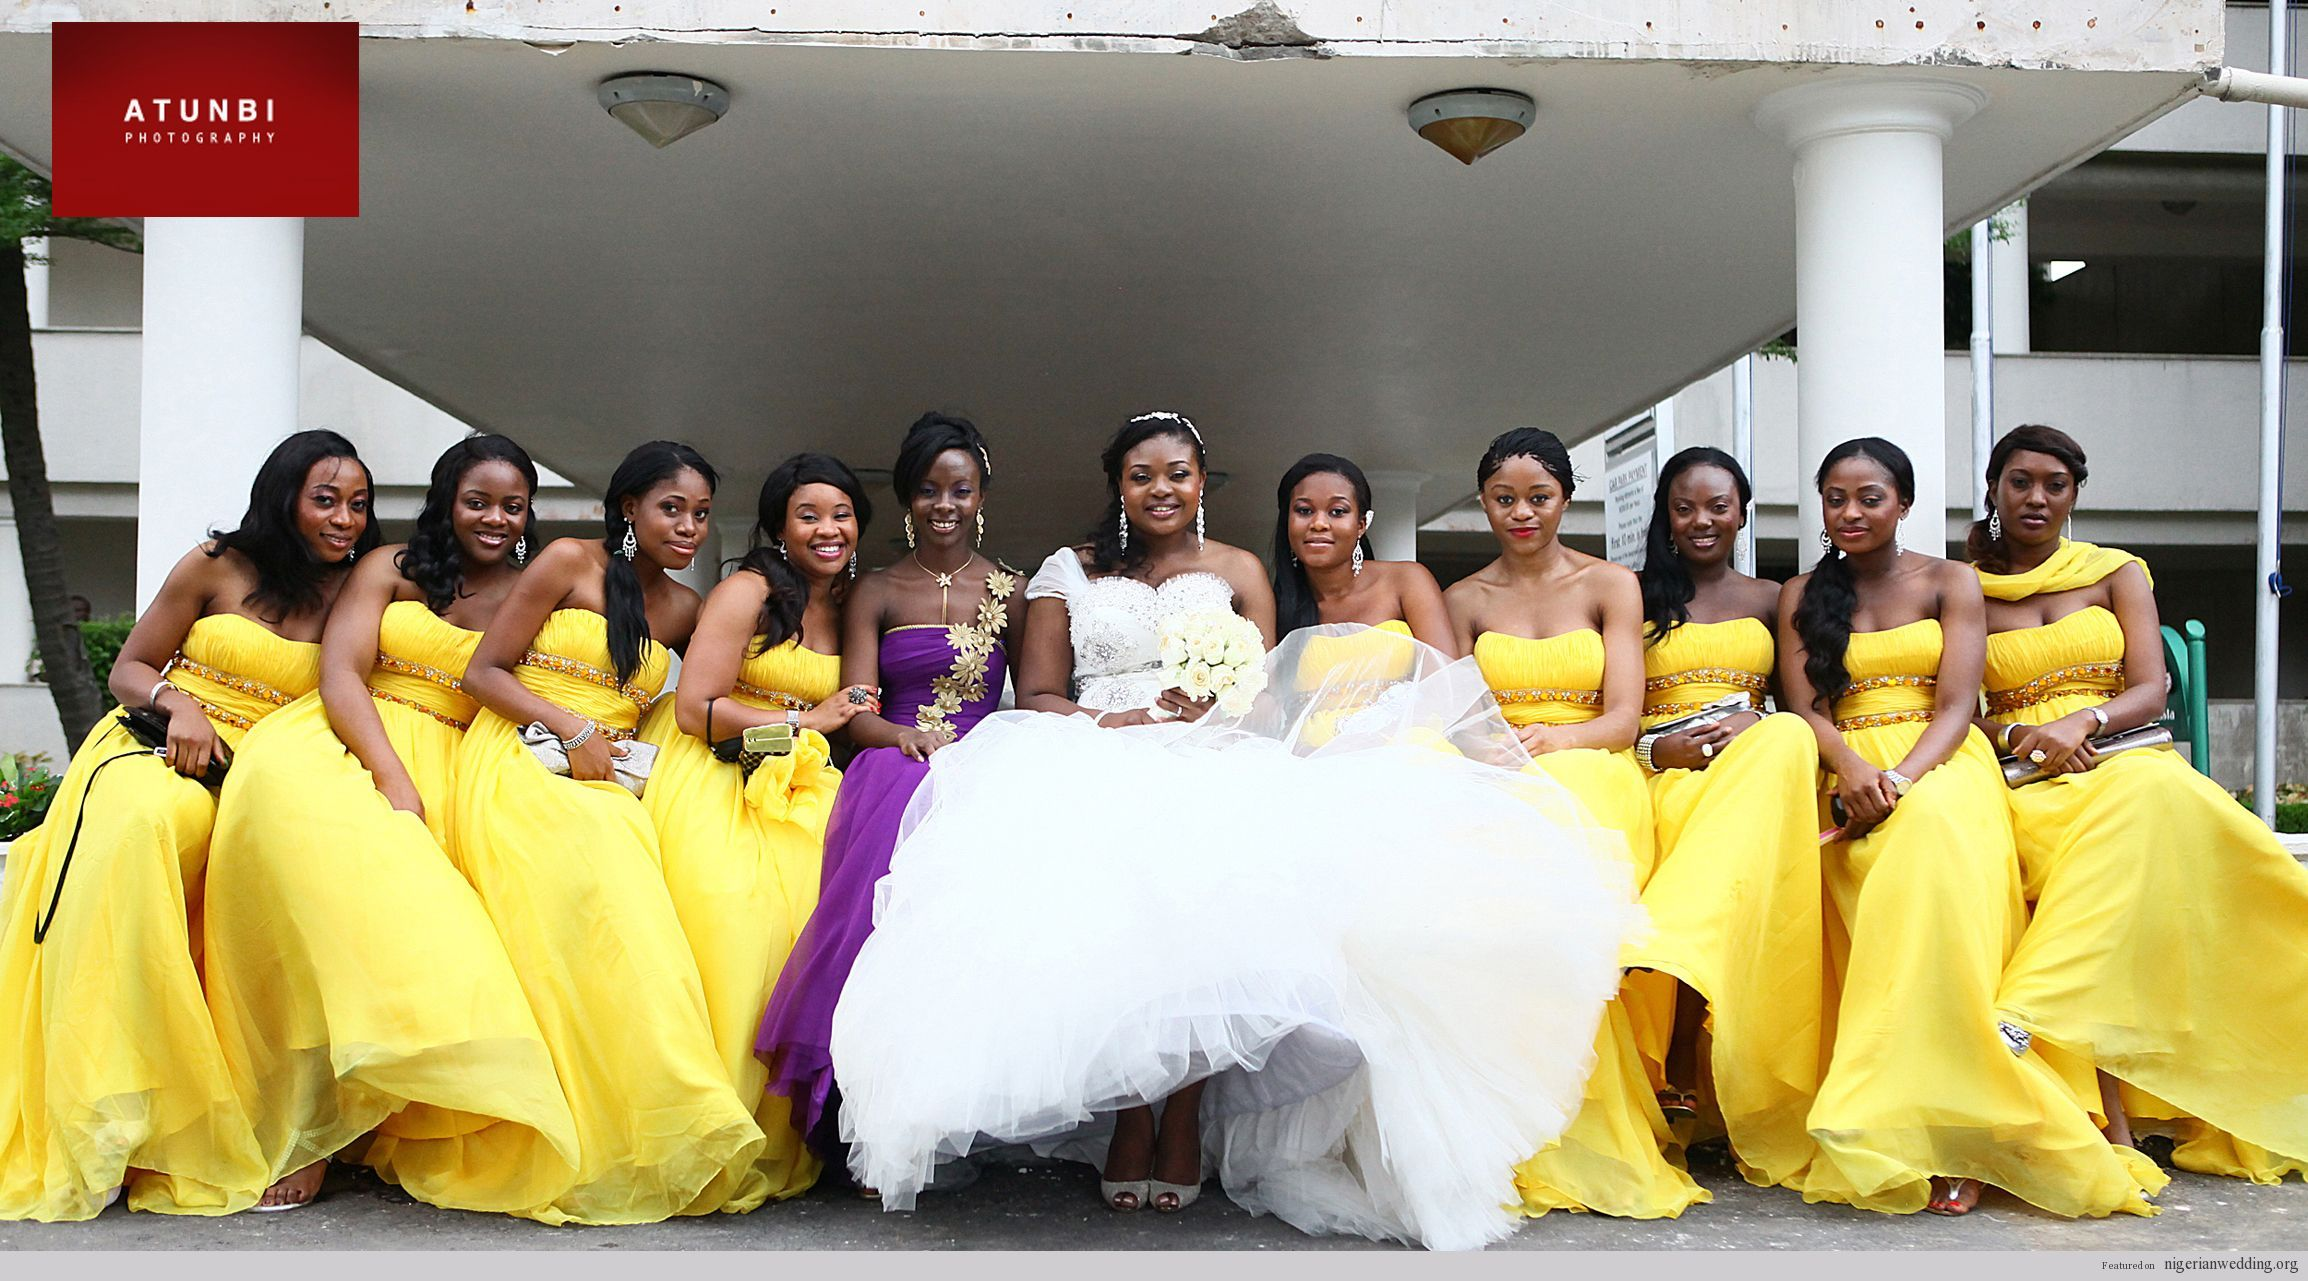 Bridesmaids in grey with yellow accessories perfect i wouldnt bridesmaids in grey with yellow accessories perfect i wouldnt have chosen brown shoes for the groomsmen though perhaps grey or black shoes ombrellifo Choice Image